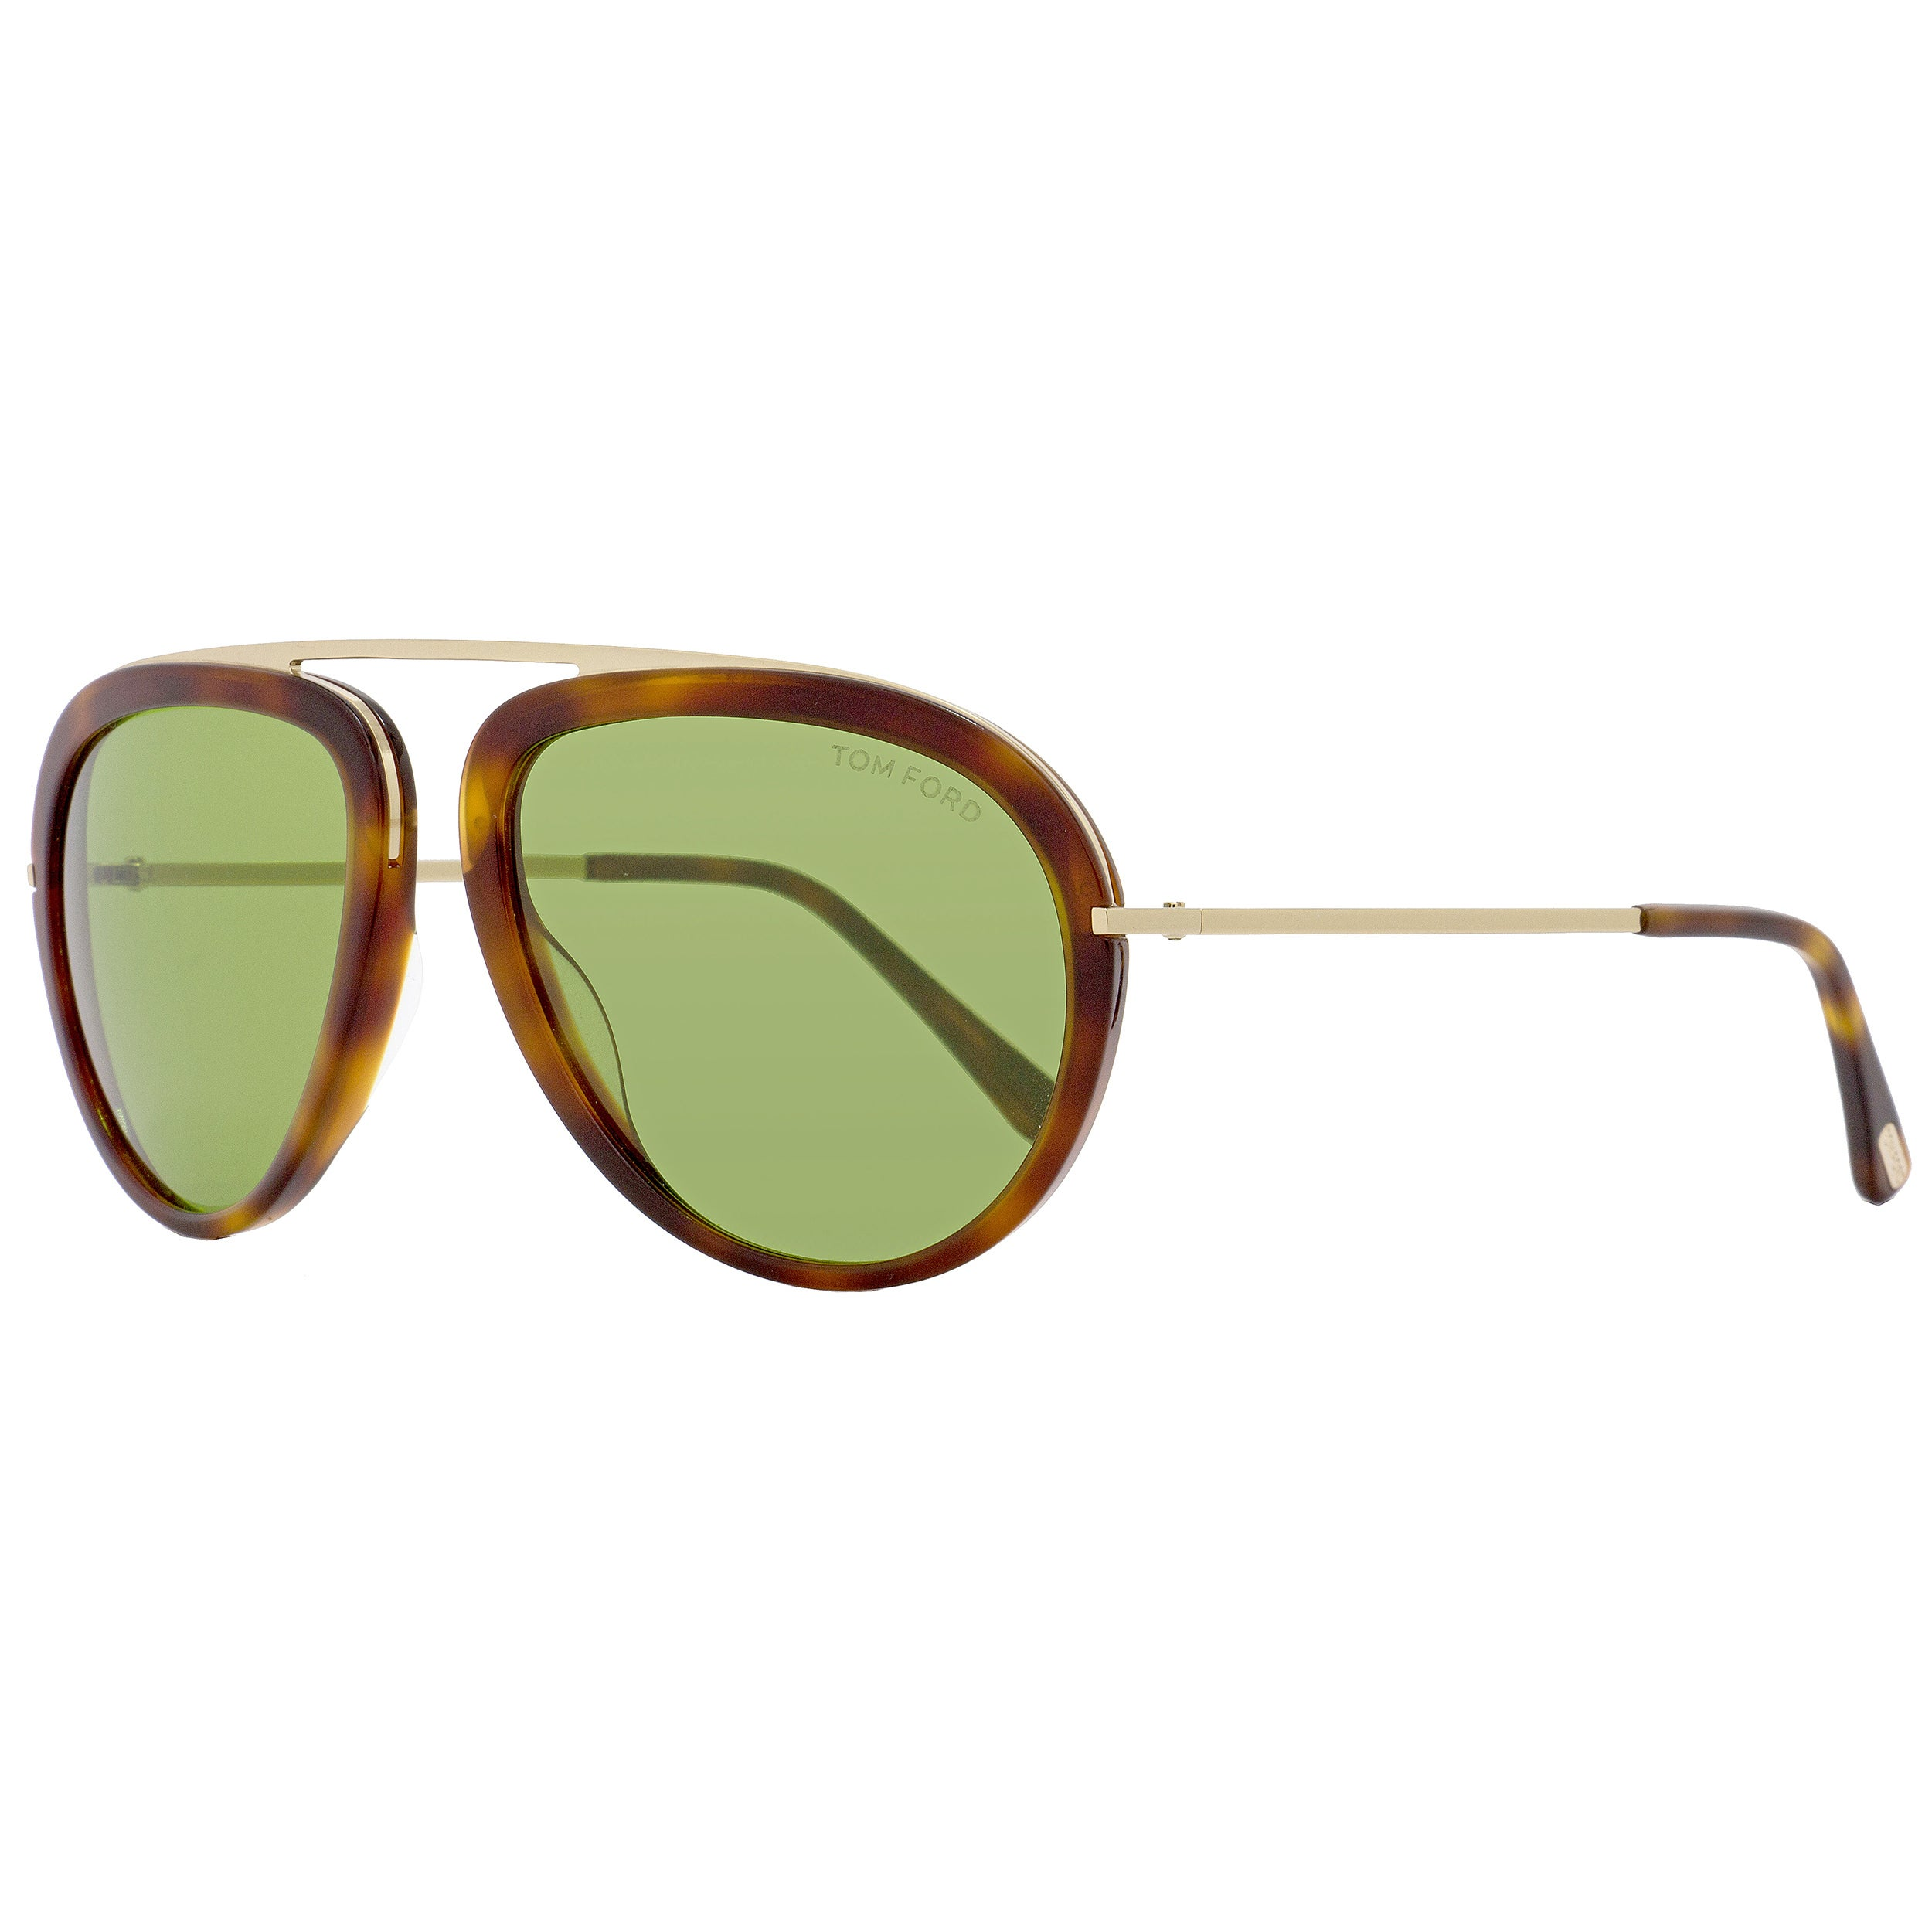 34e005bc43700 Shop Tom Ford TF452 Stacy 56N Women s Havana Rose Gold Green Lens Sunglasses  - Free Shipping Today - Overstock - 18153235